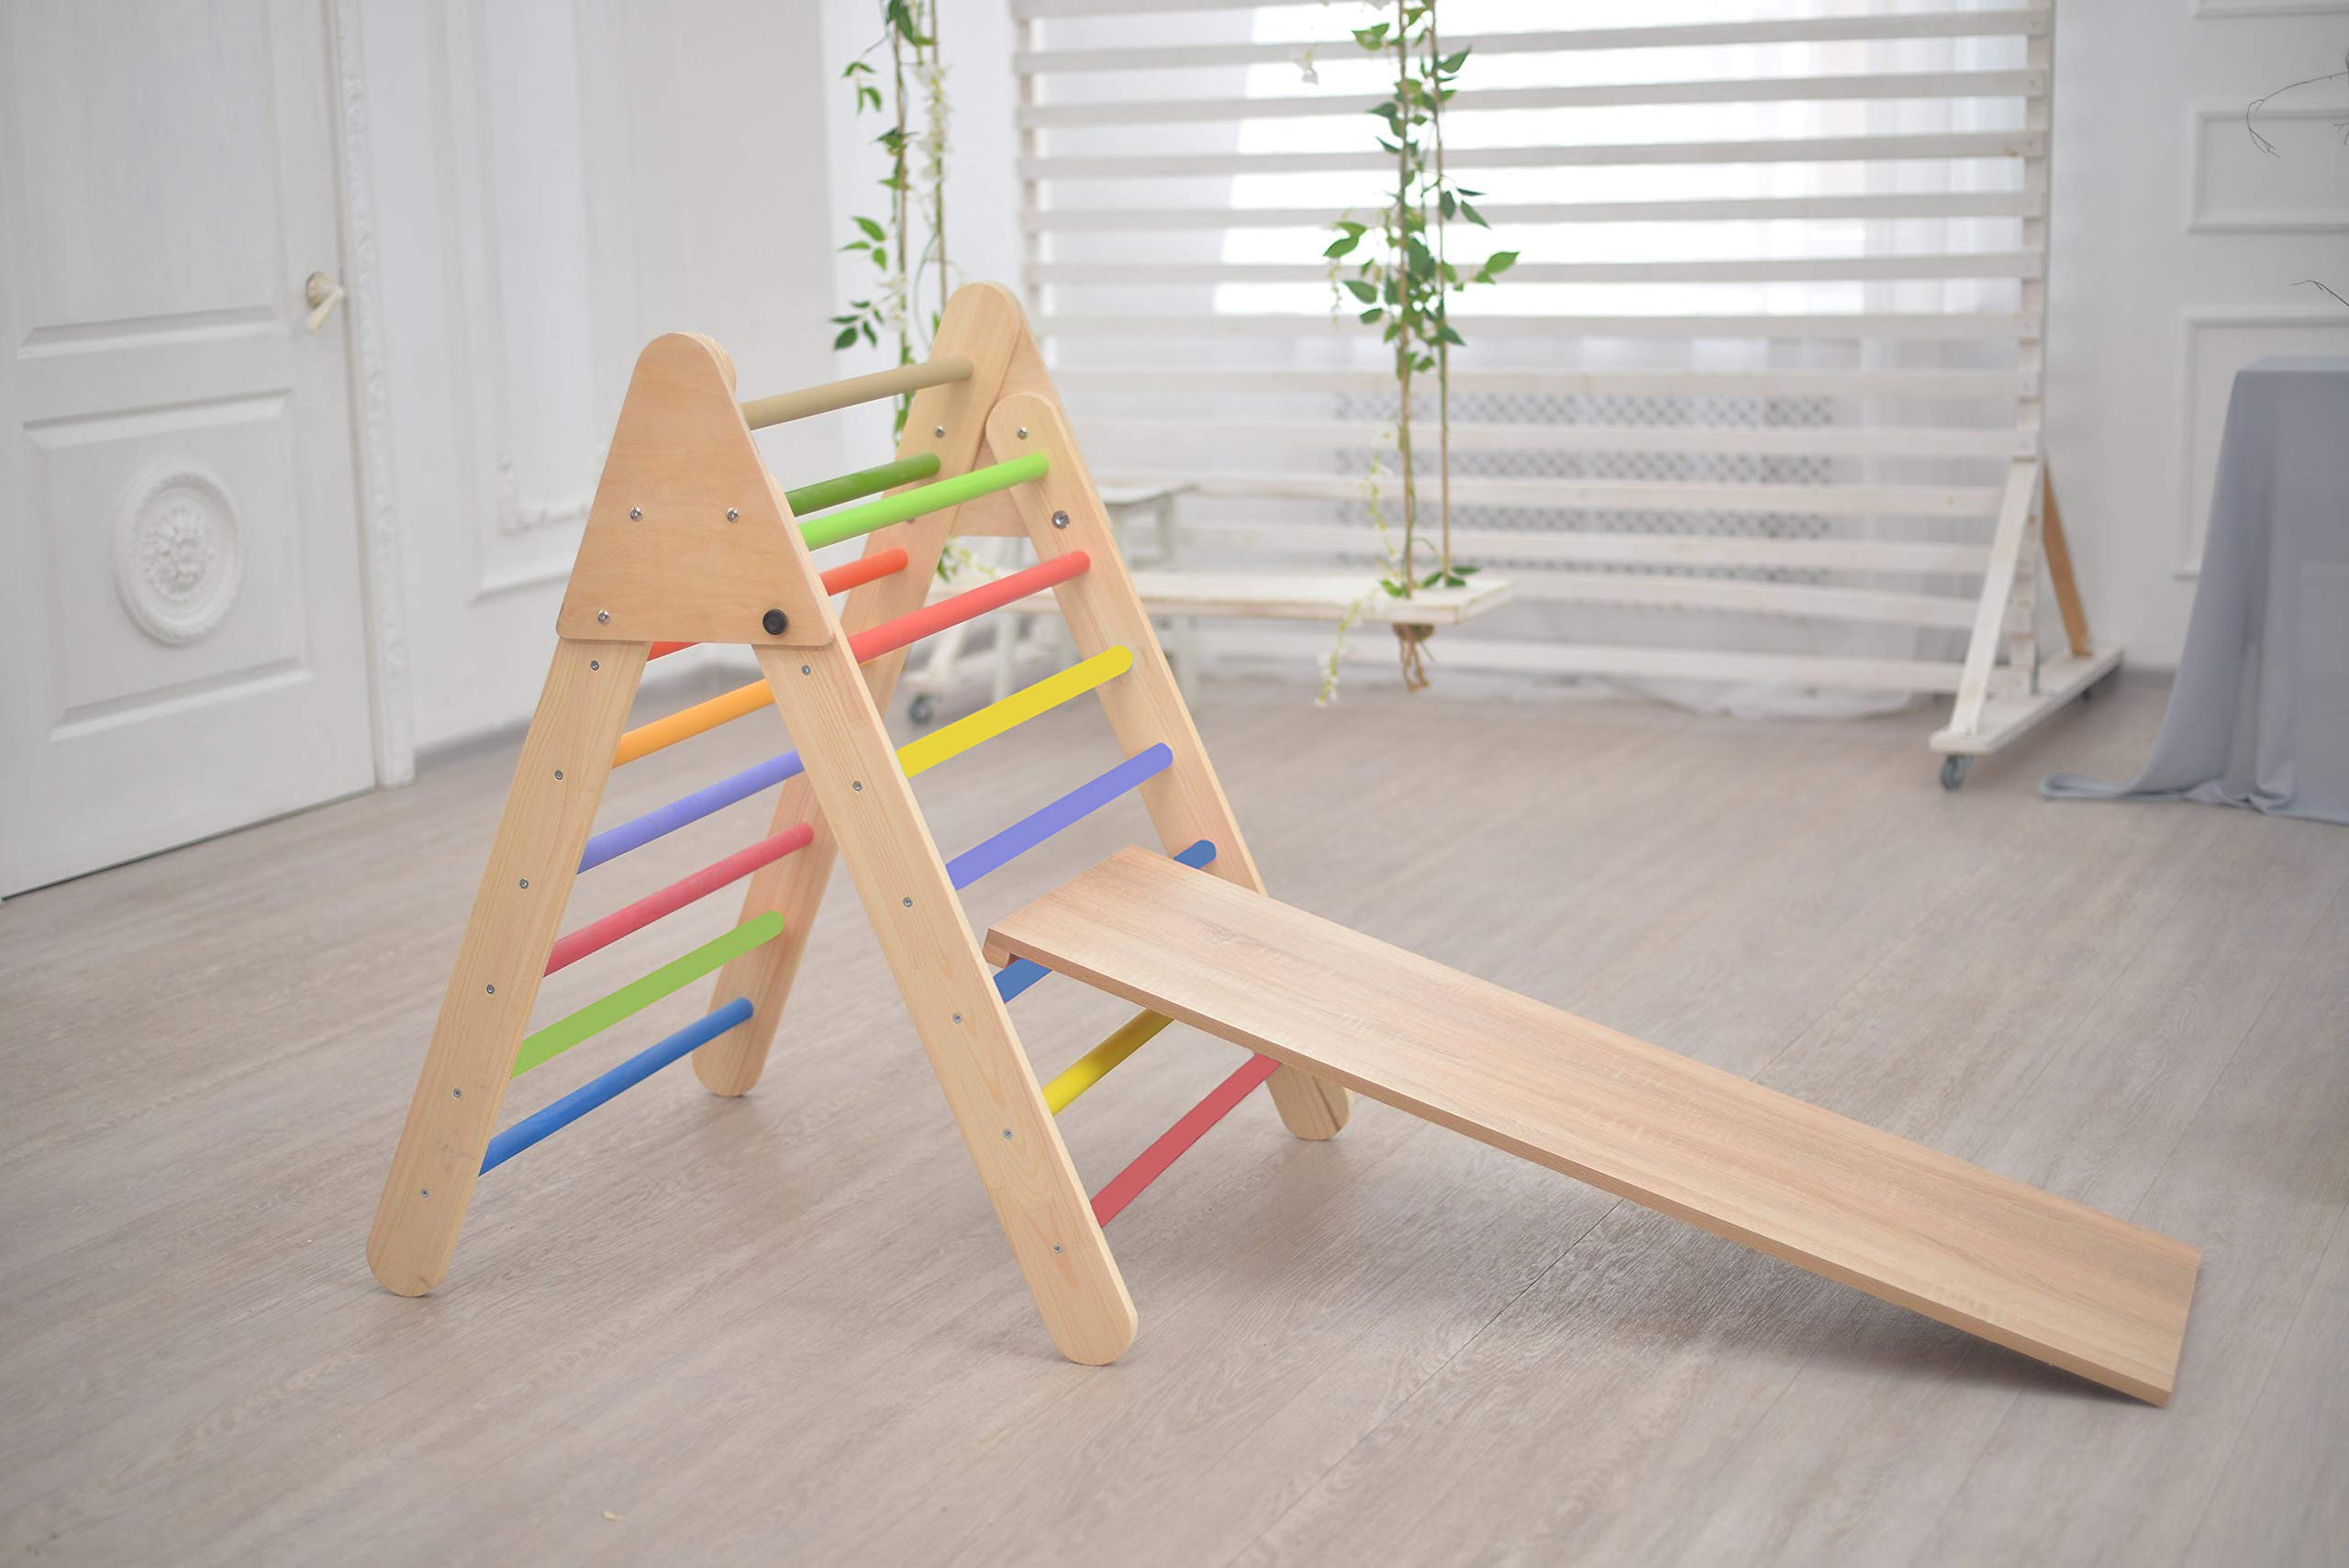 Smart Kids Wooden Little Climber with Slide - Foldable Pikler Triangle - Montessori Ramp - Montessori Triangle - Climbing Gym - Toddler Climber (Painted) by Smart Kids (Image #1)